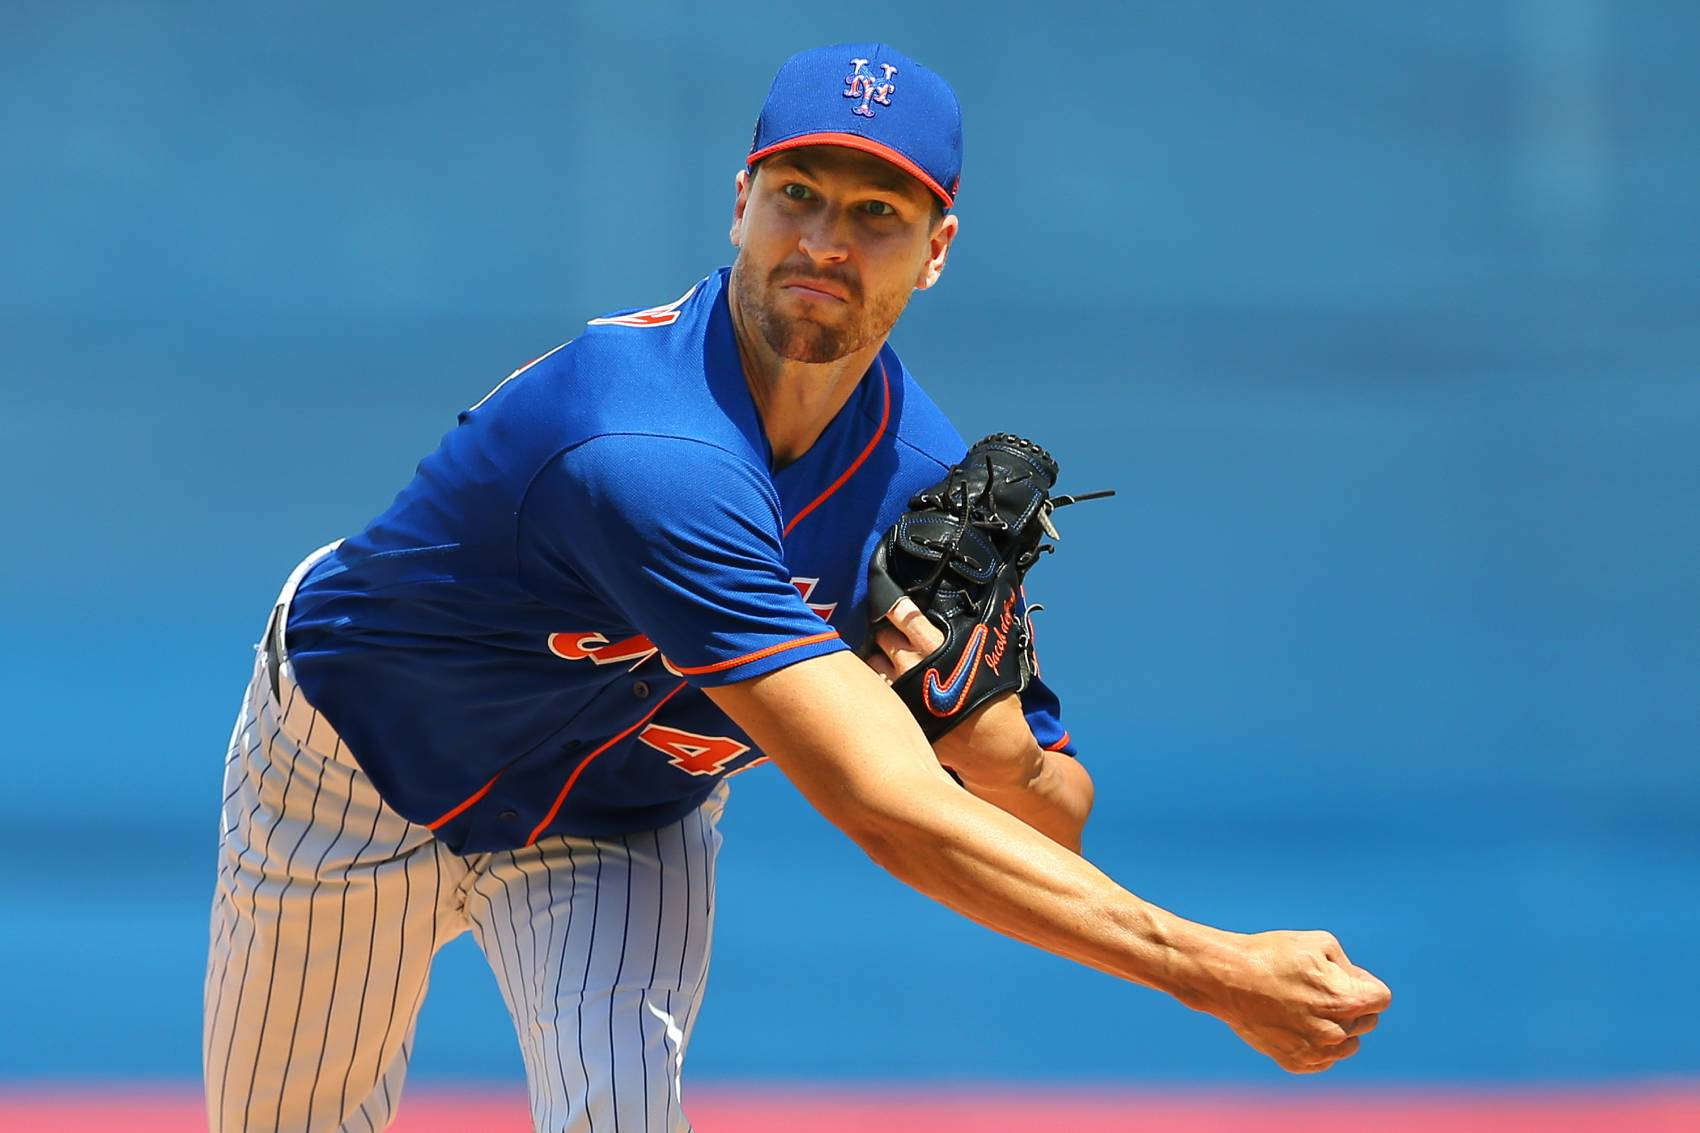 New York Mets ace Jacob deGrom had the fewest victories by a starting pitcher in their Cy Young season.